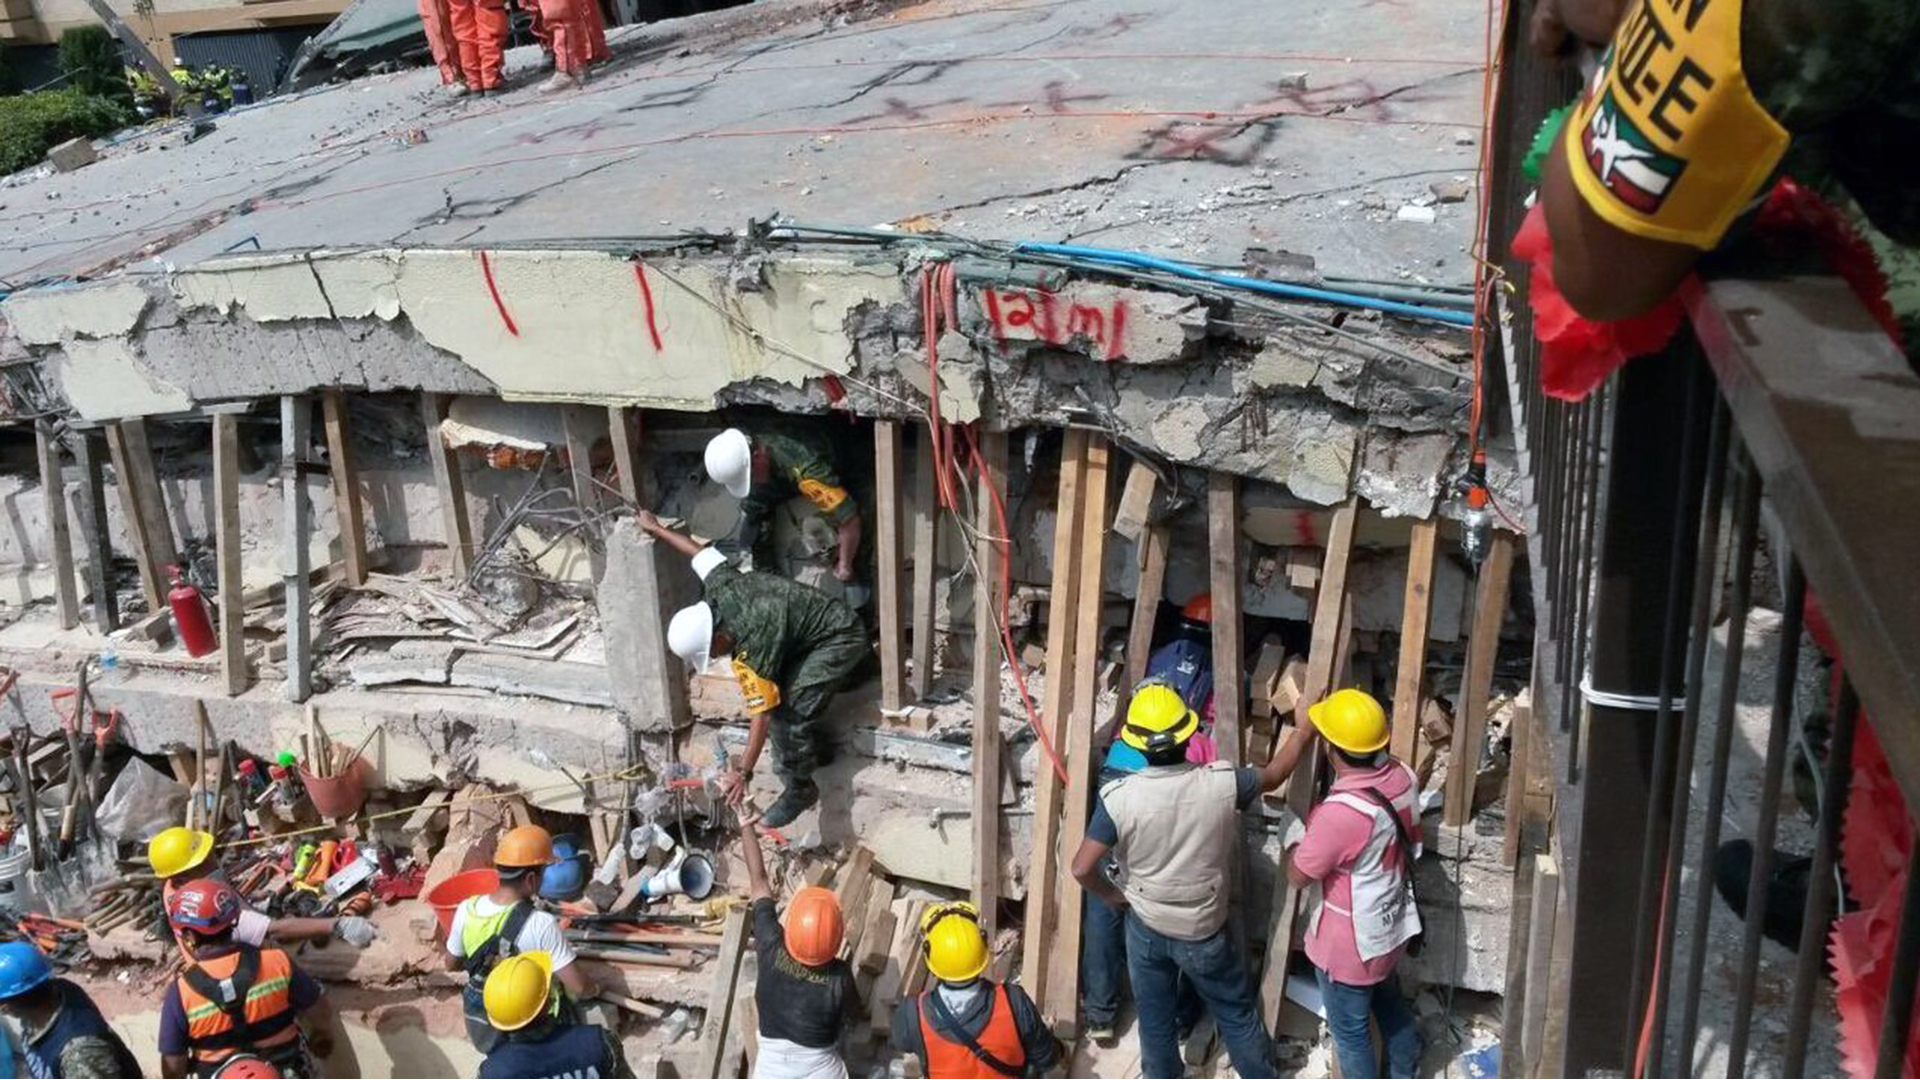 Mexico City earthquake Enrique Rebsamen School rescue-159532.jpg86905667